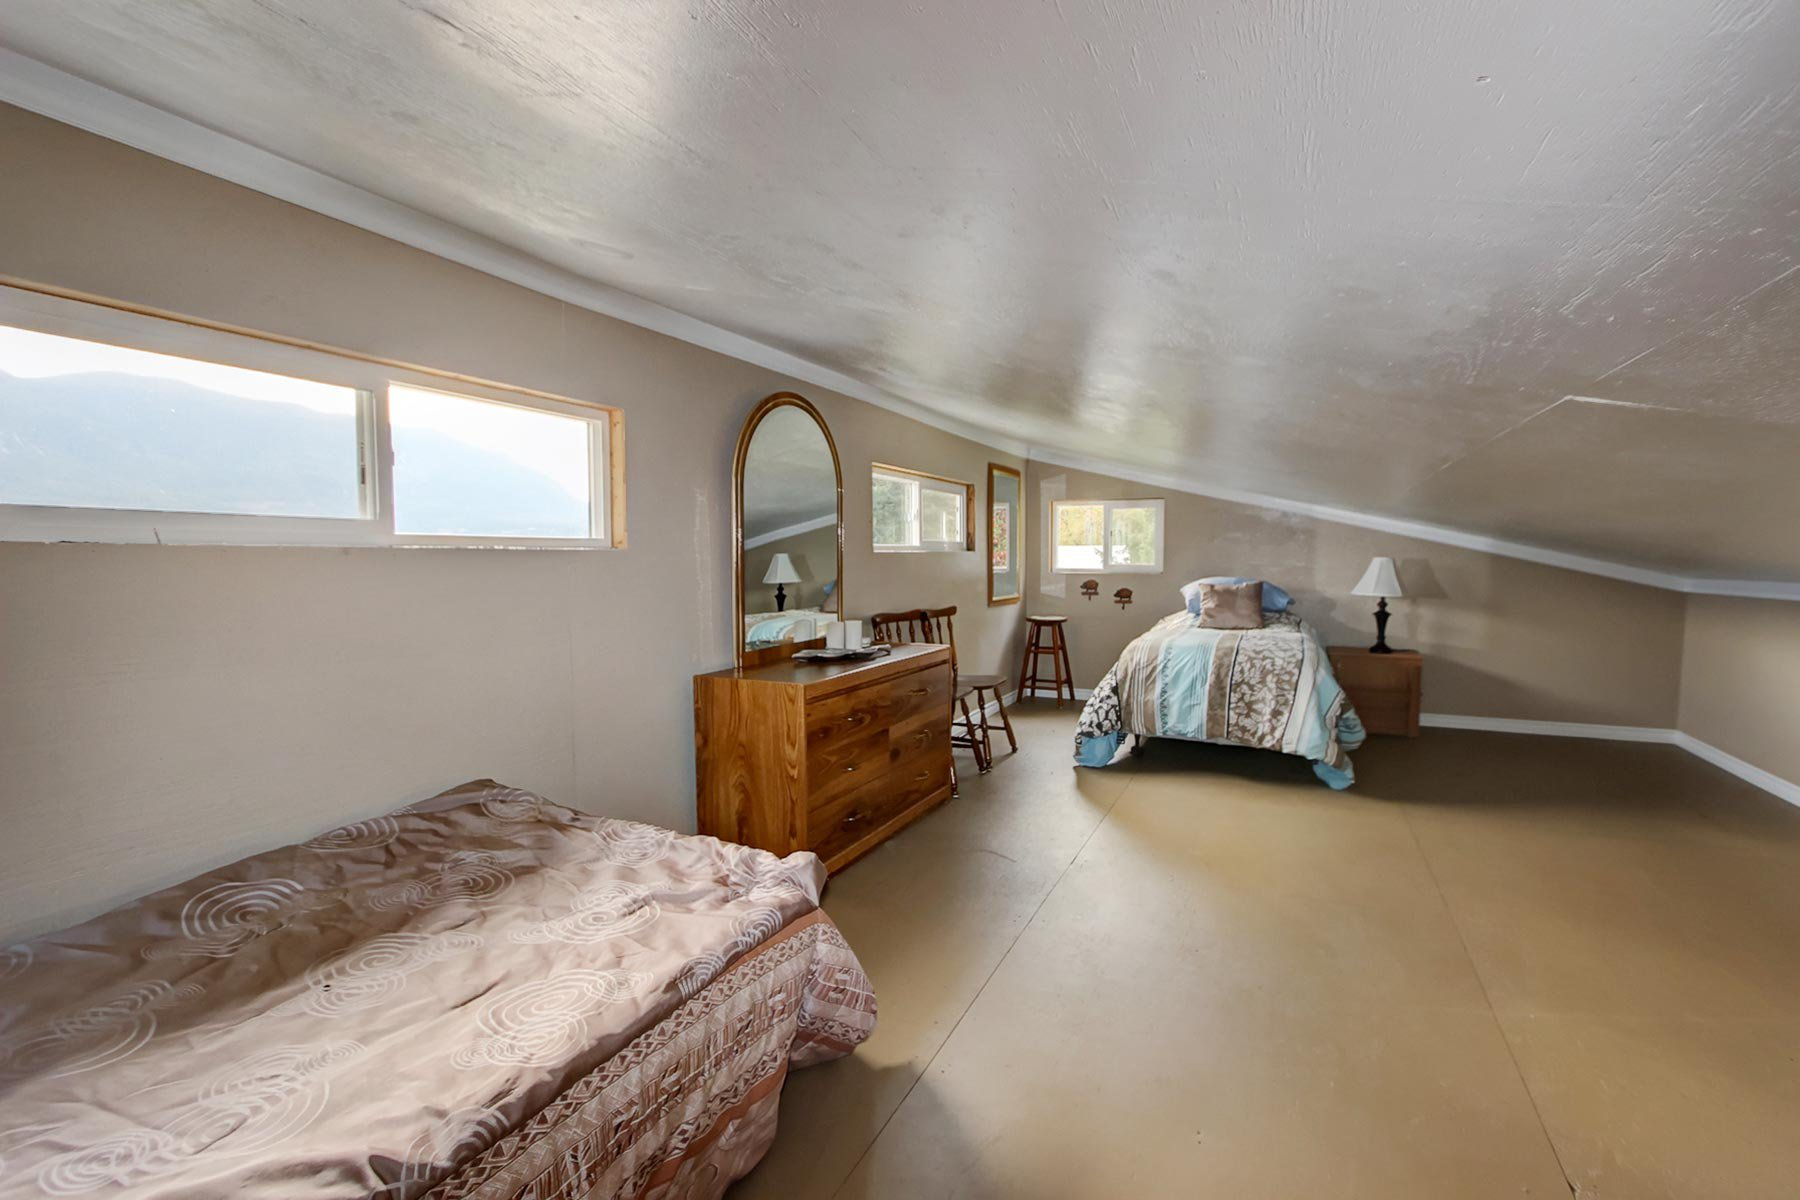 Photo 36: Photos: 3620 Hilliam Frontage Road in Scotch Creek: House for sale : MLS®# 10217240